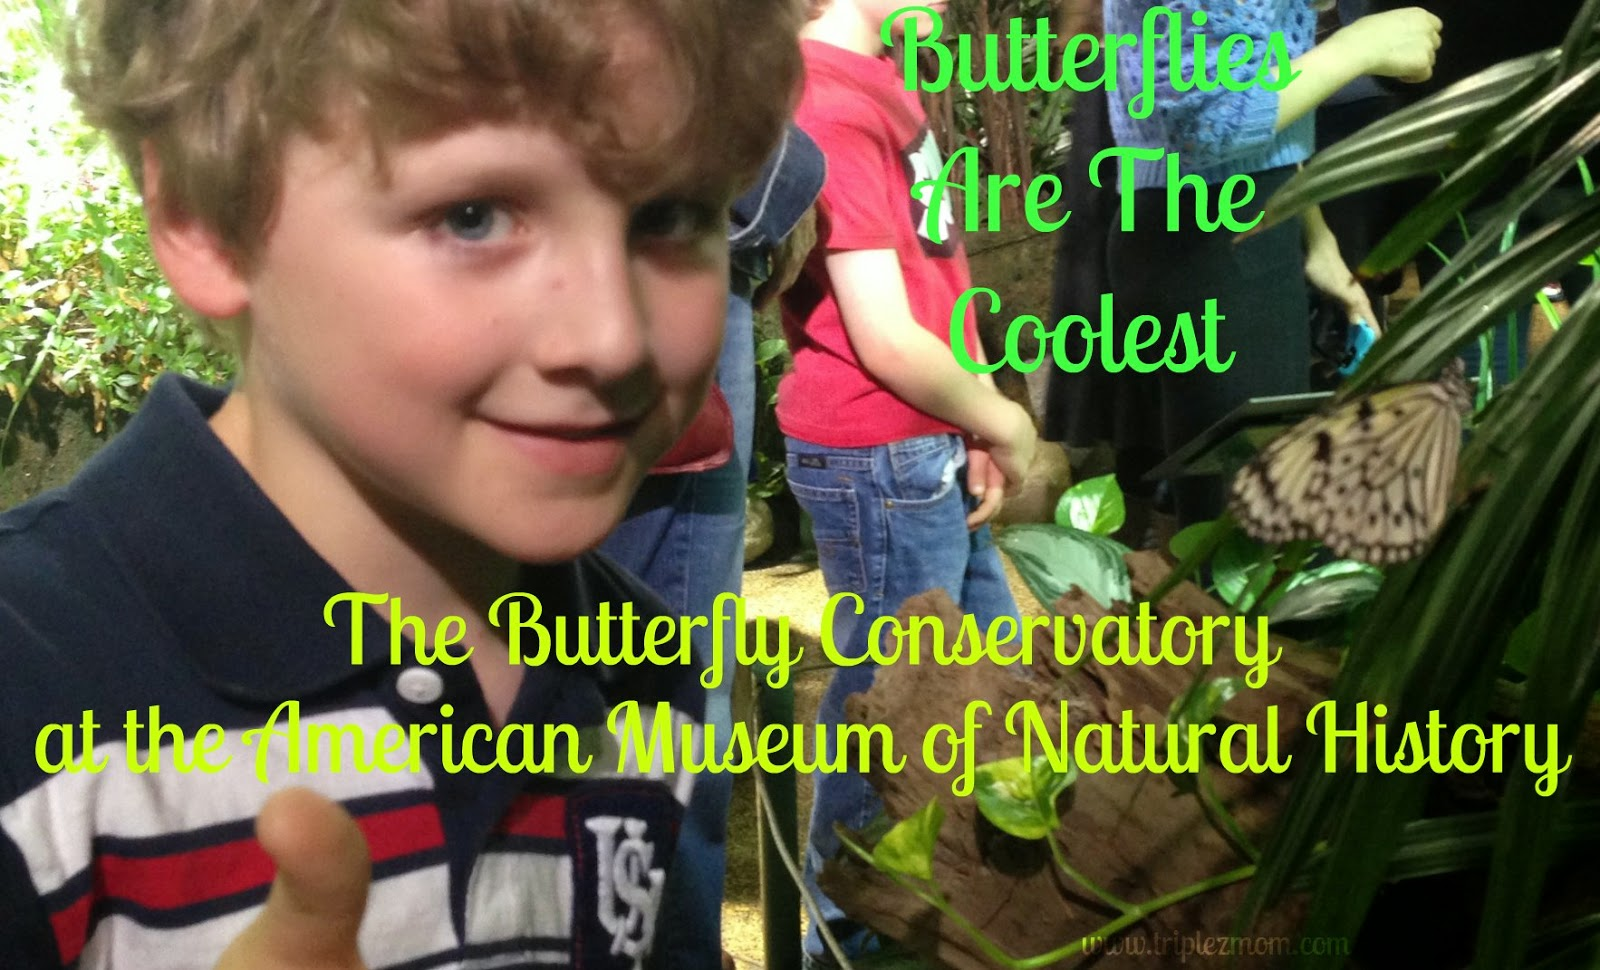 The Butterfly Conservatory.